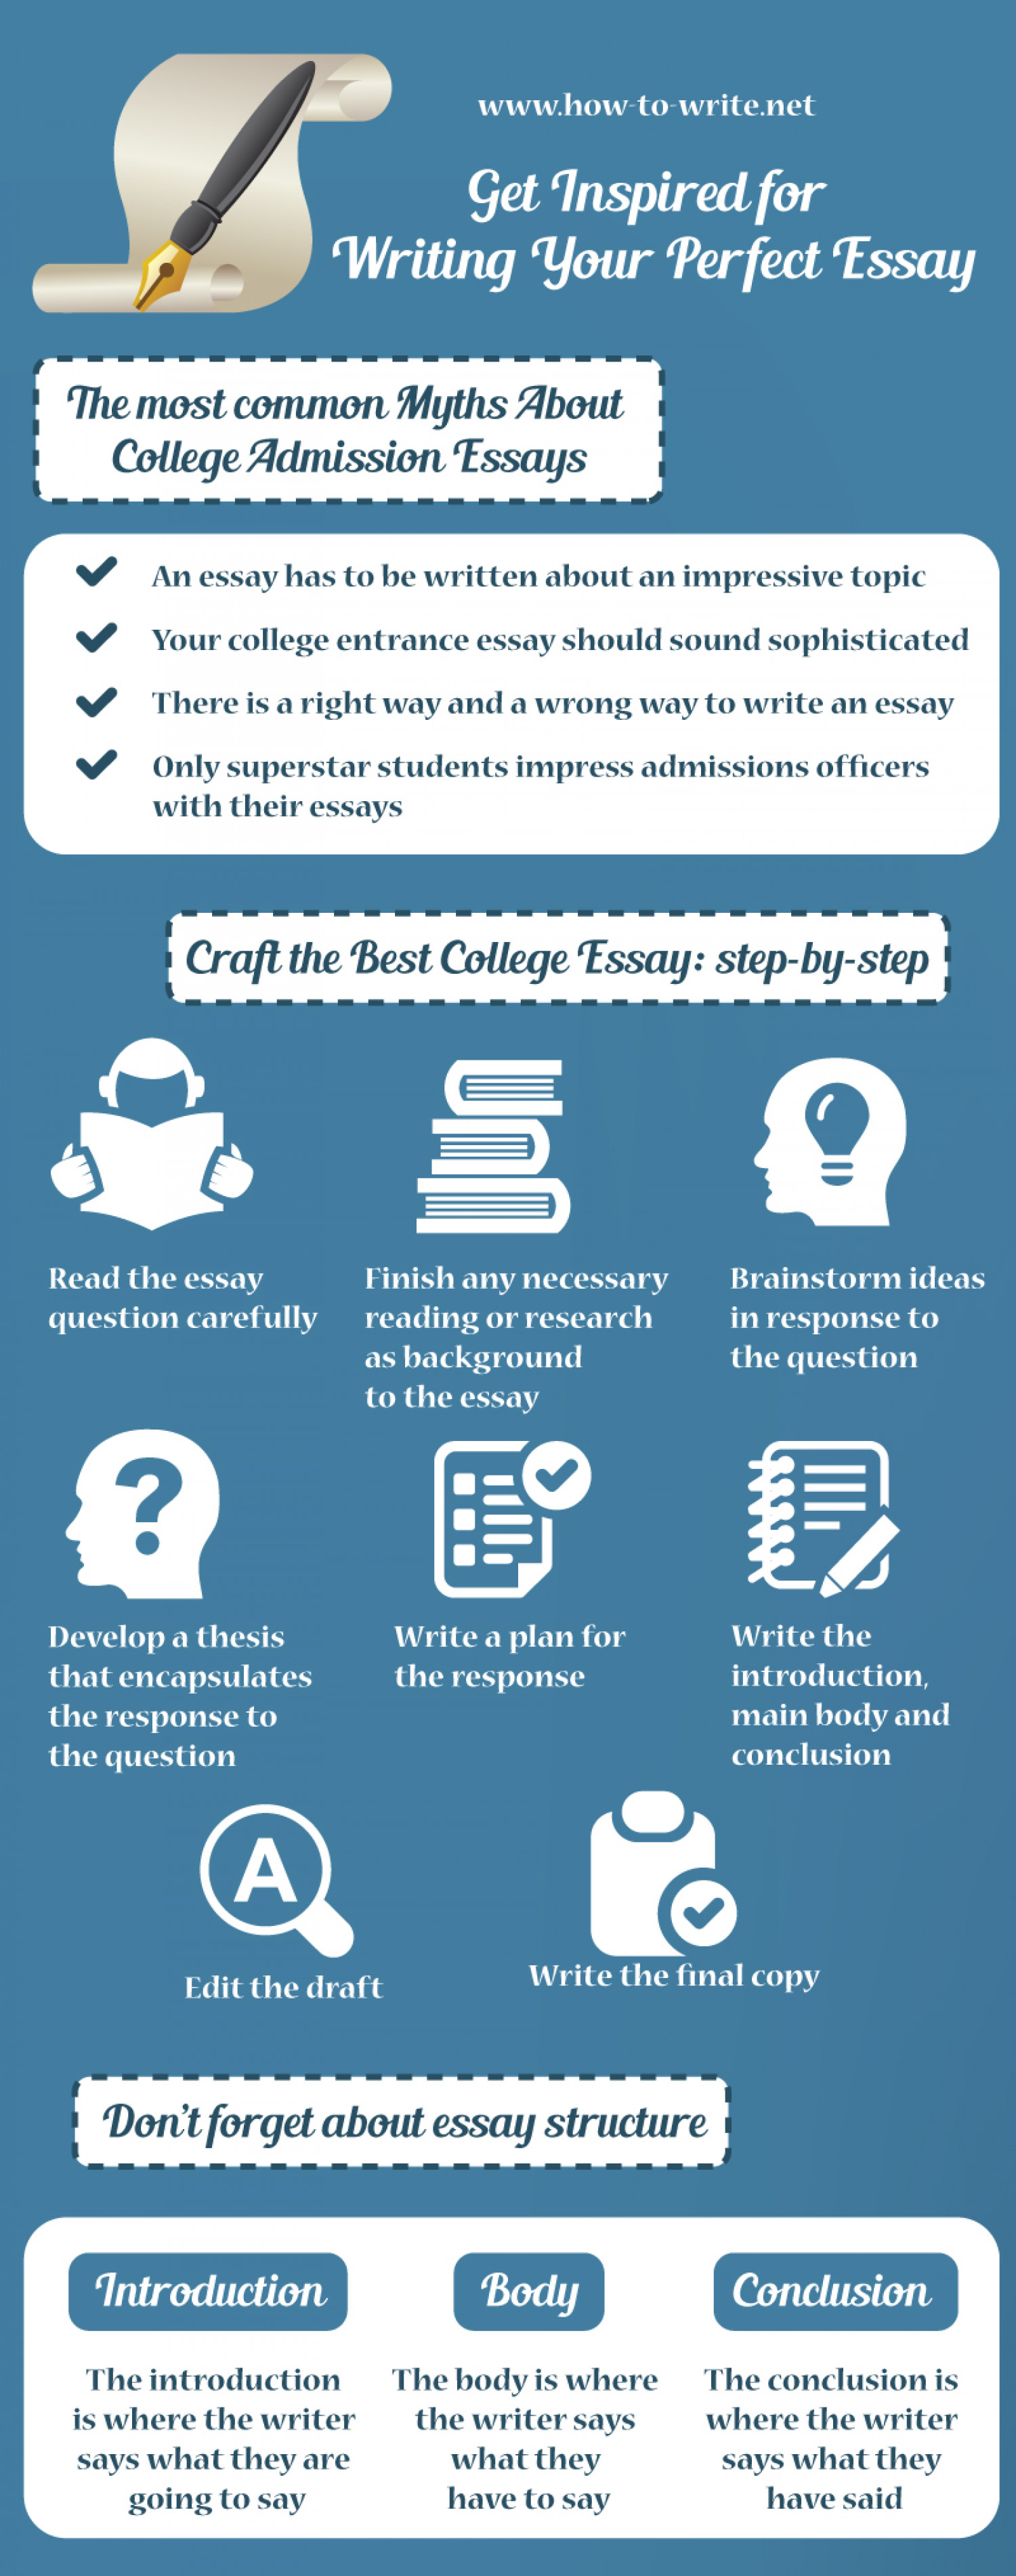 15 Crazy College Application Essay Questions